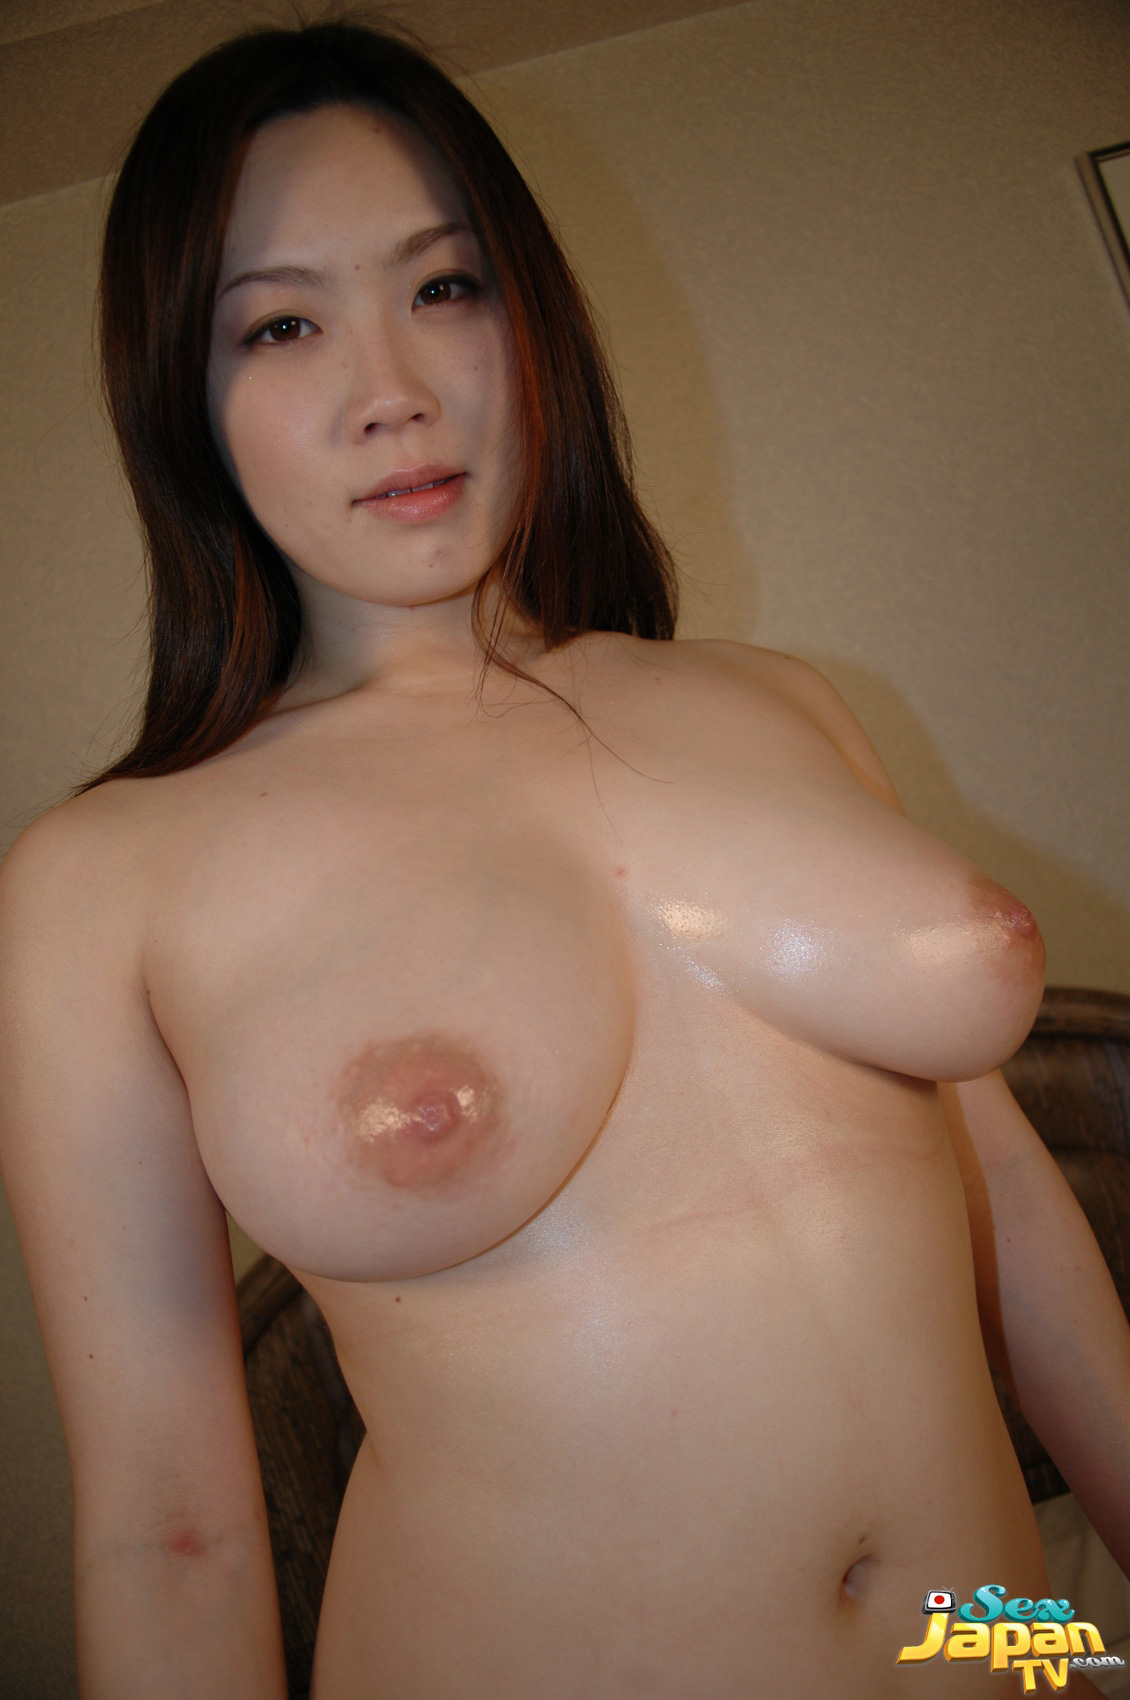 Quickly thought)))) Asian japanese girl big tits porn share your